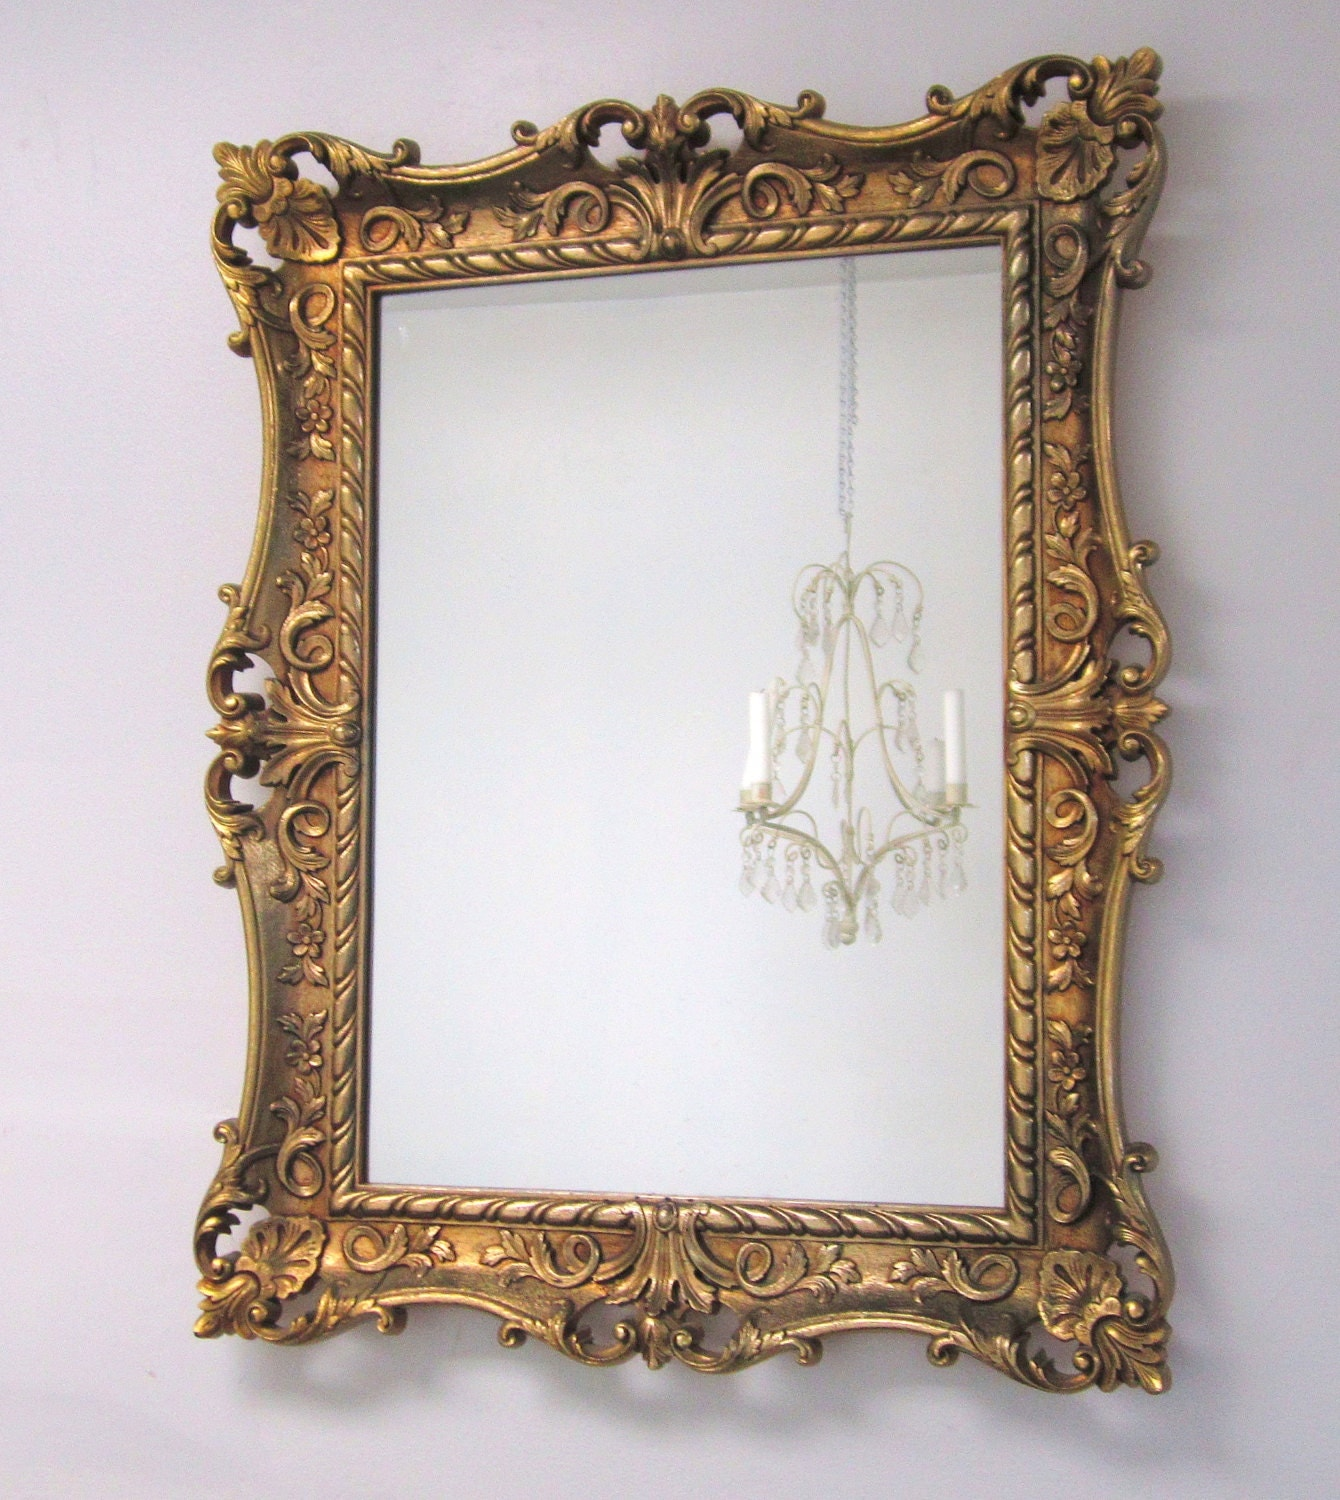 Decorative Vintage Mirrors For Sale 28x22 Baroque